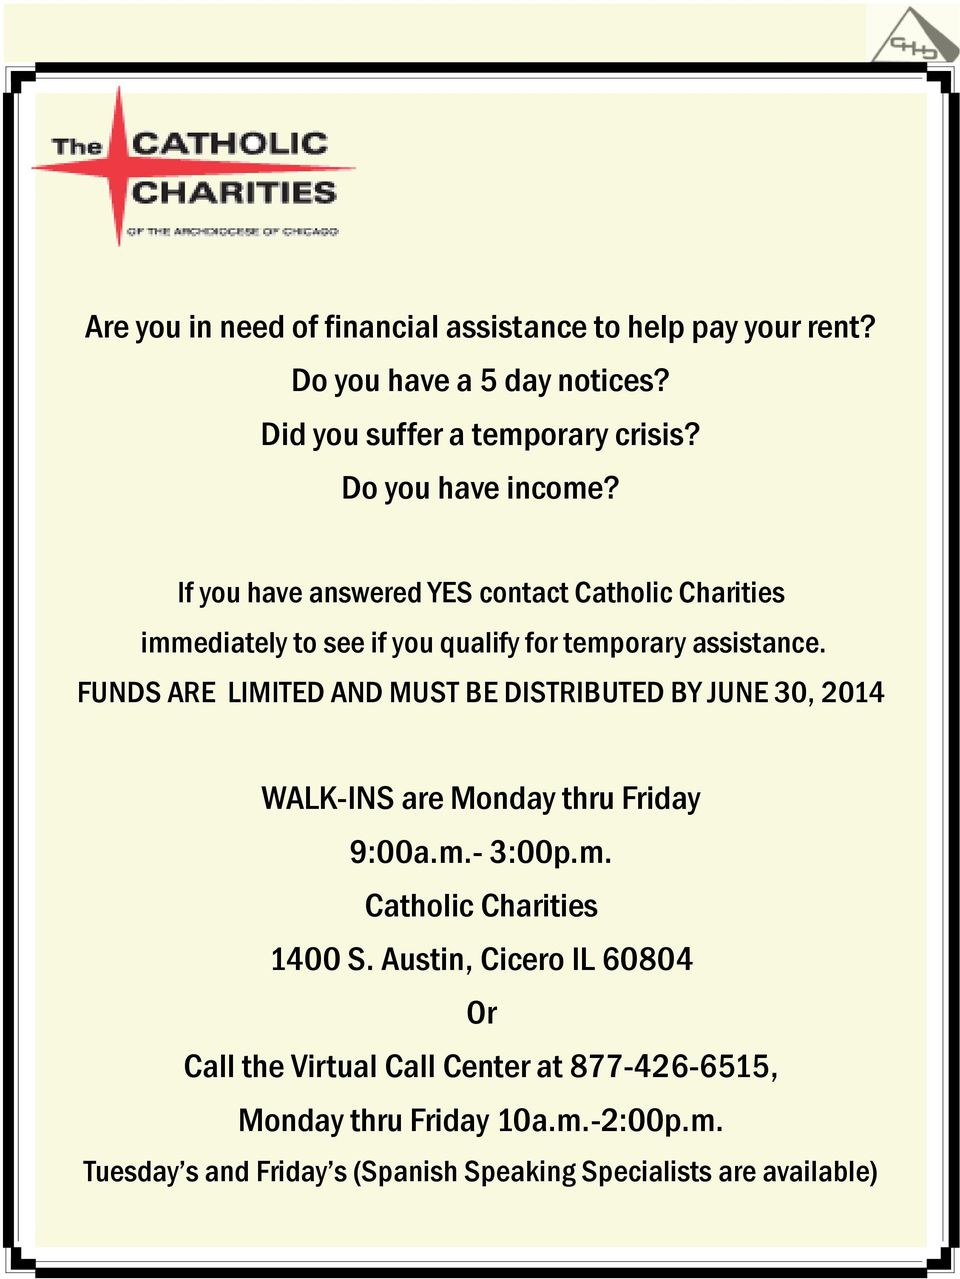 FUNDS ARE LIMITED AND MUST BE DISTRIBUTED BY JUNE 30, 2014 WALK-INS are Monday thru Friday 9:00a.m.- 3:00p.m. Catholic Charities 1400 S.